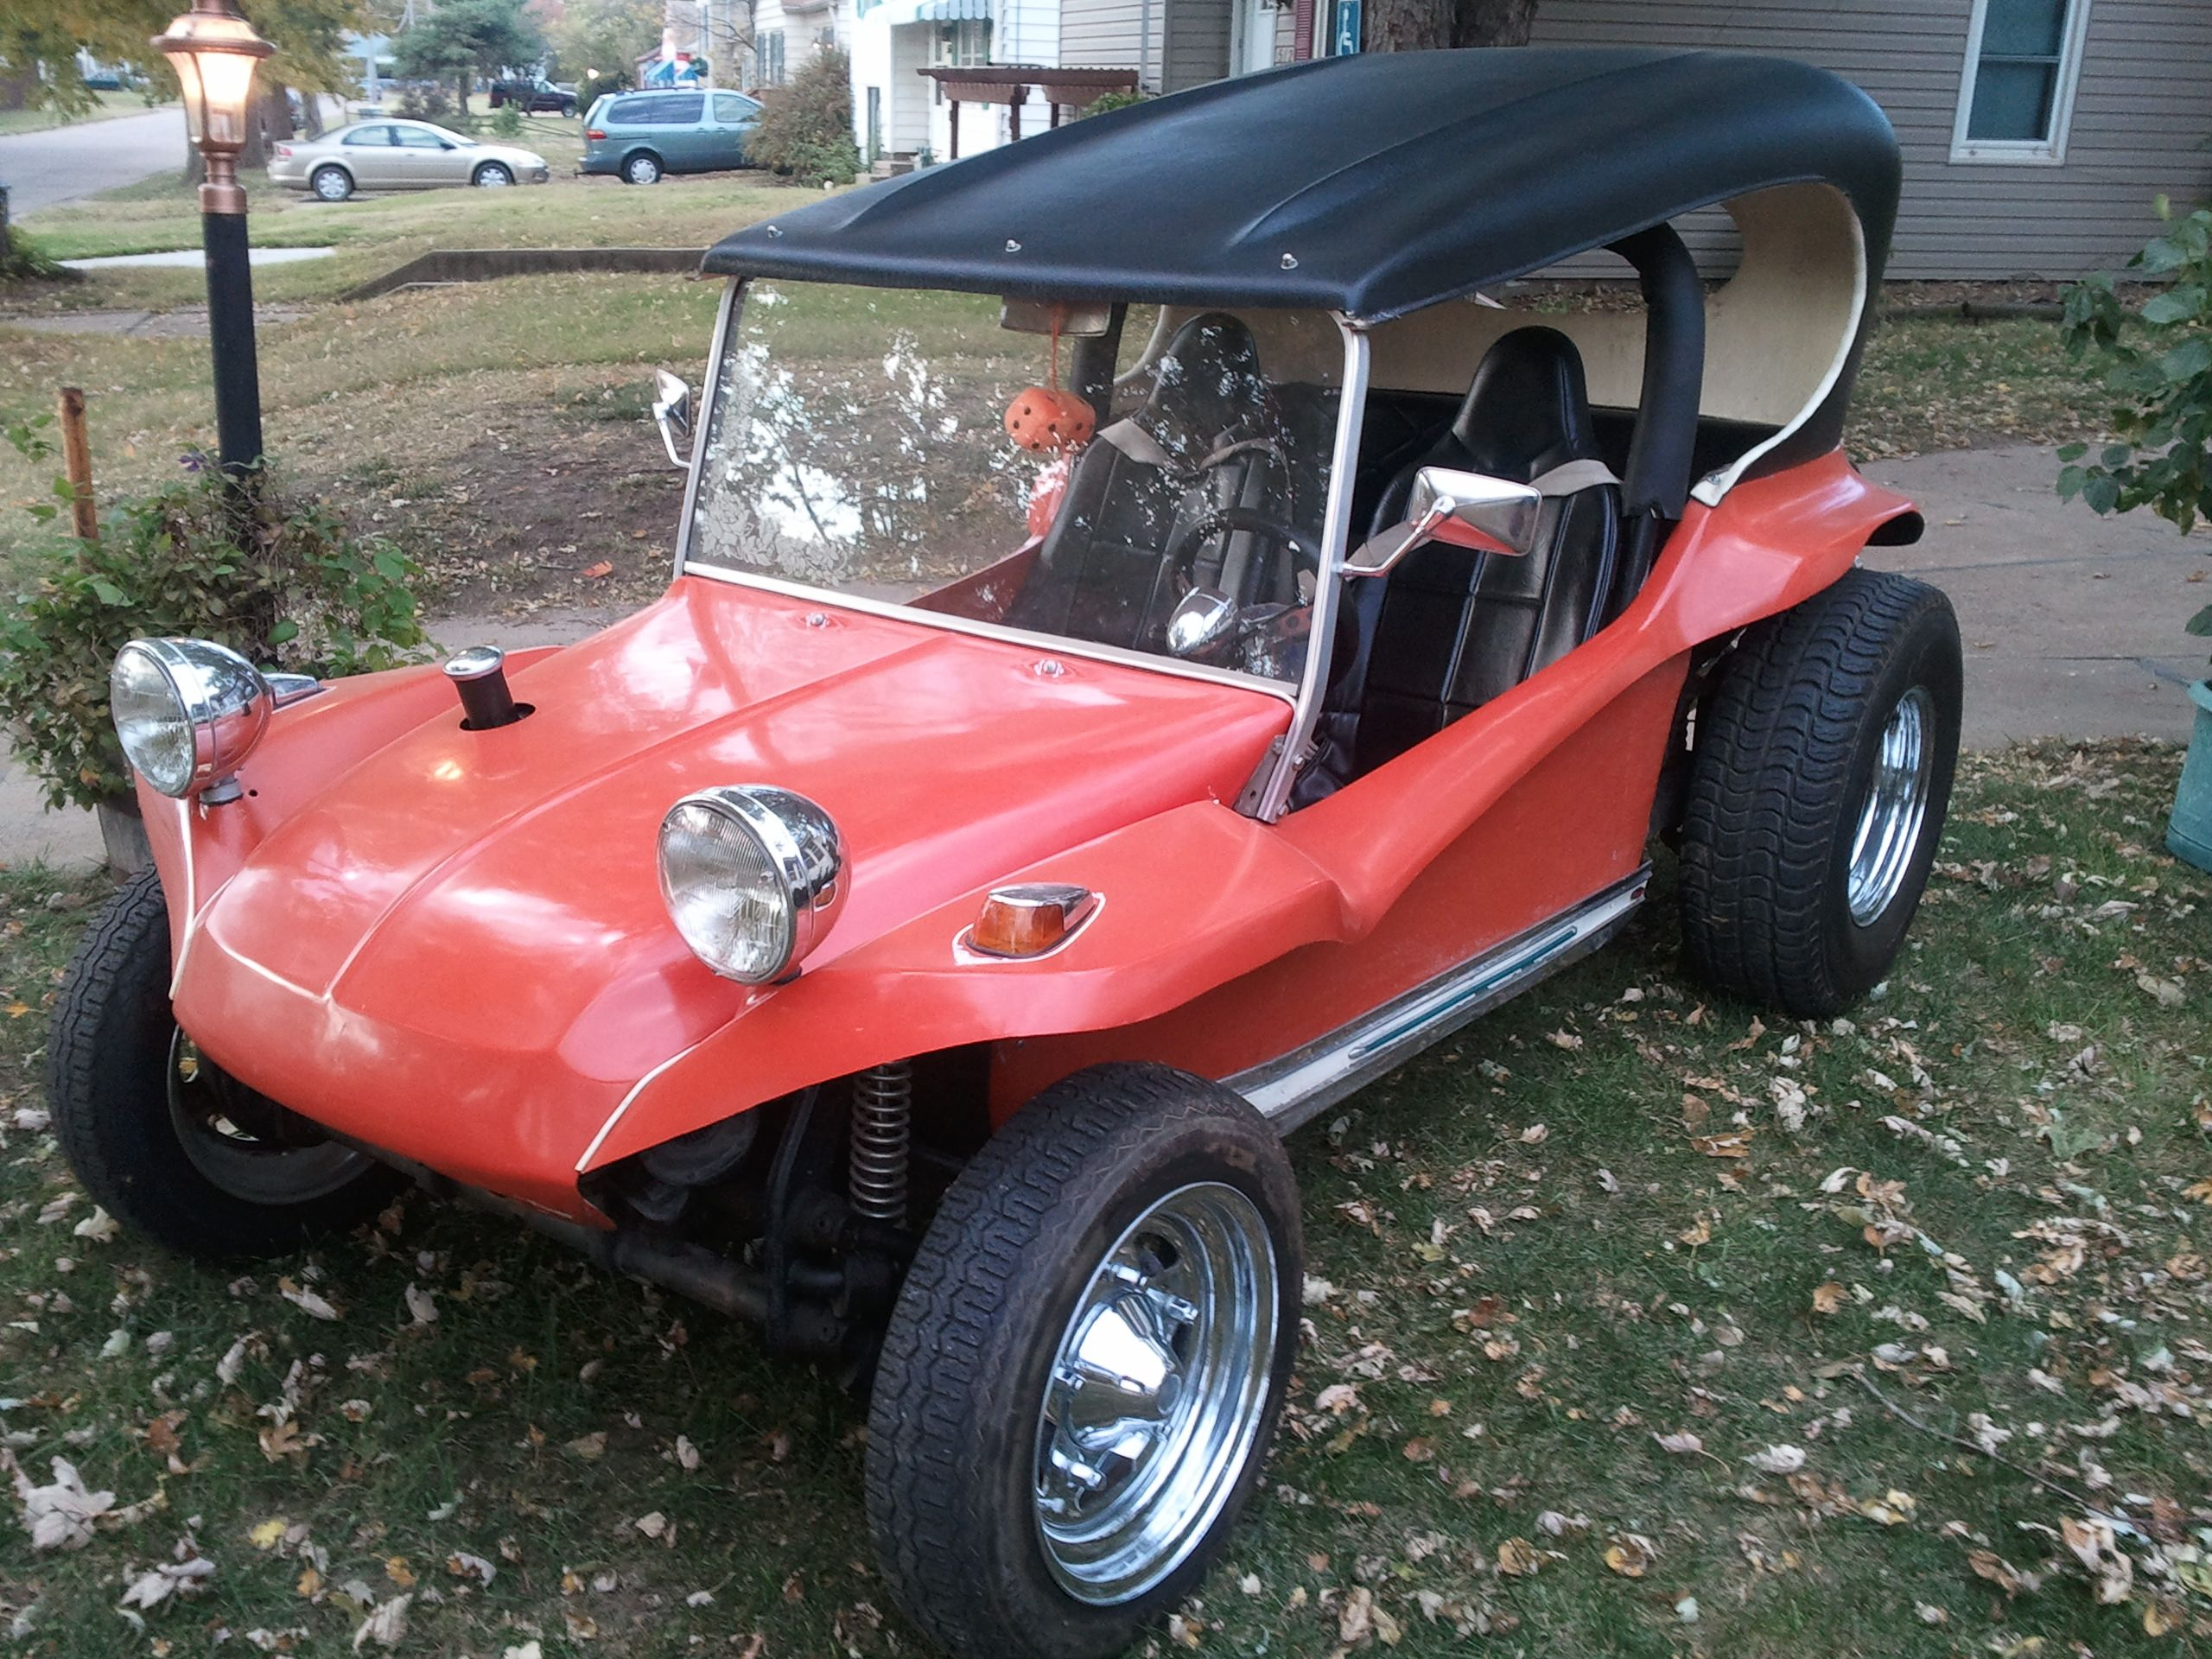 The front 3/4 view of my Manx Buggy with a hardtop that came from Colorado Springs in 1997.